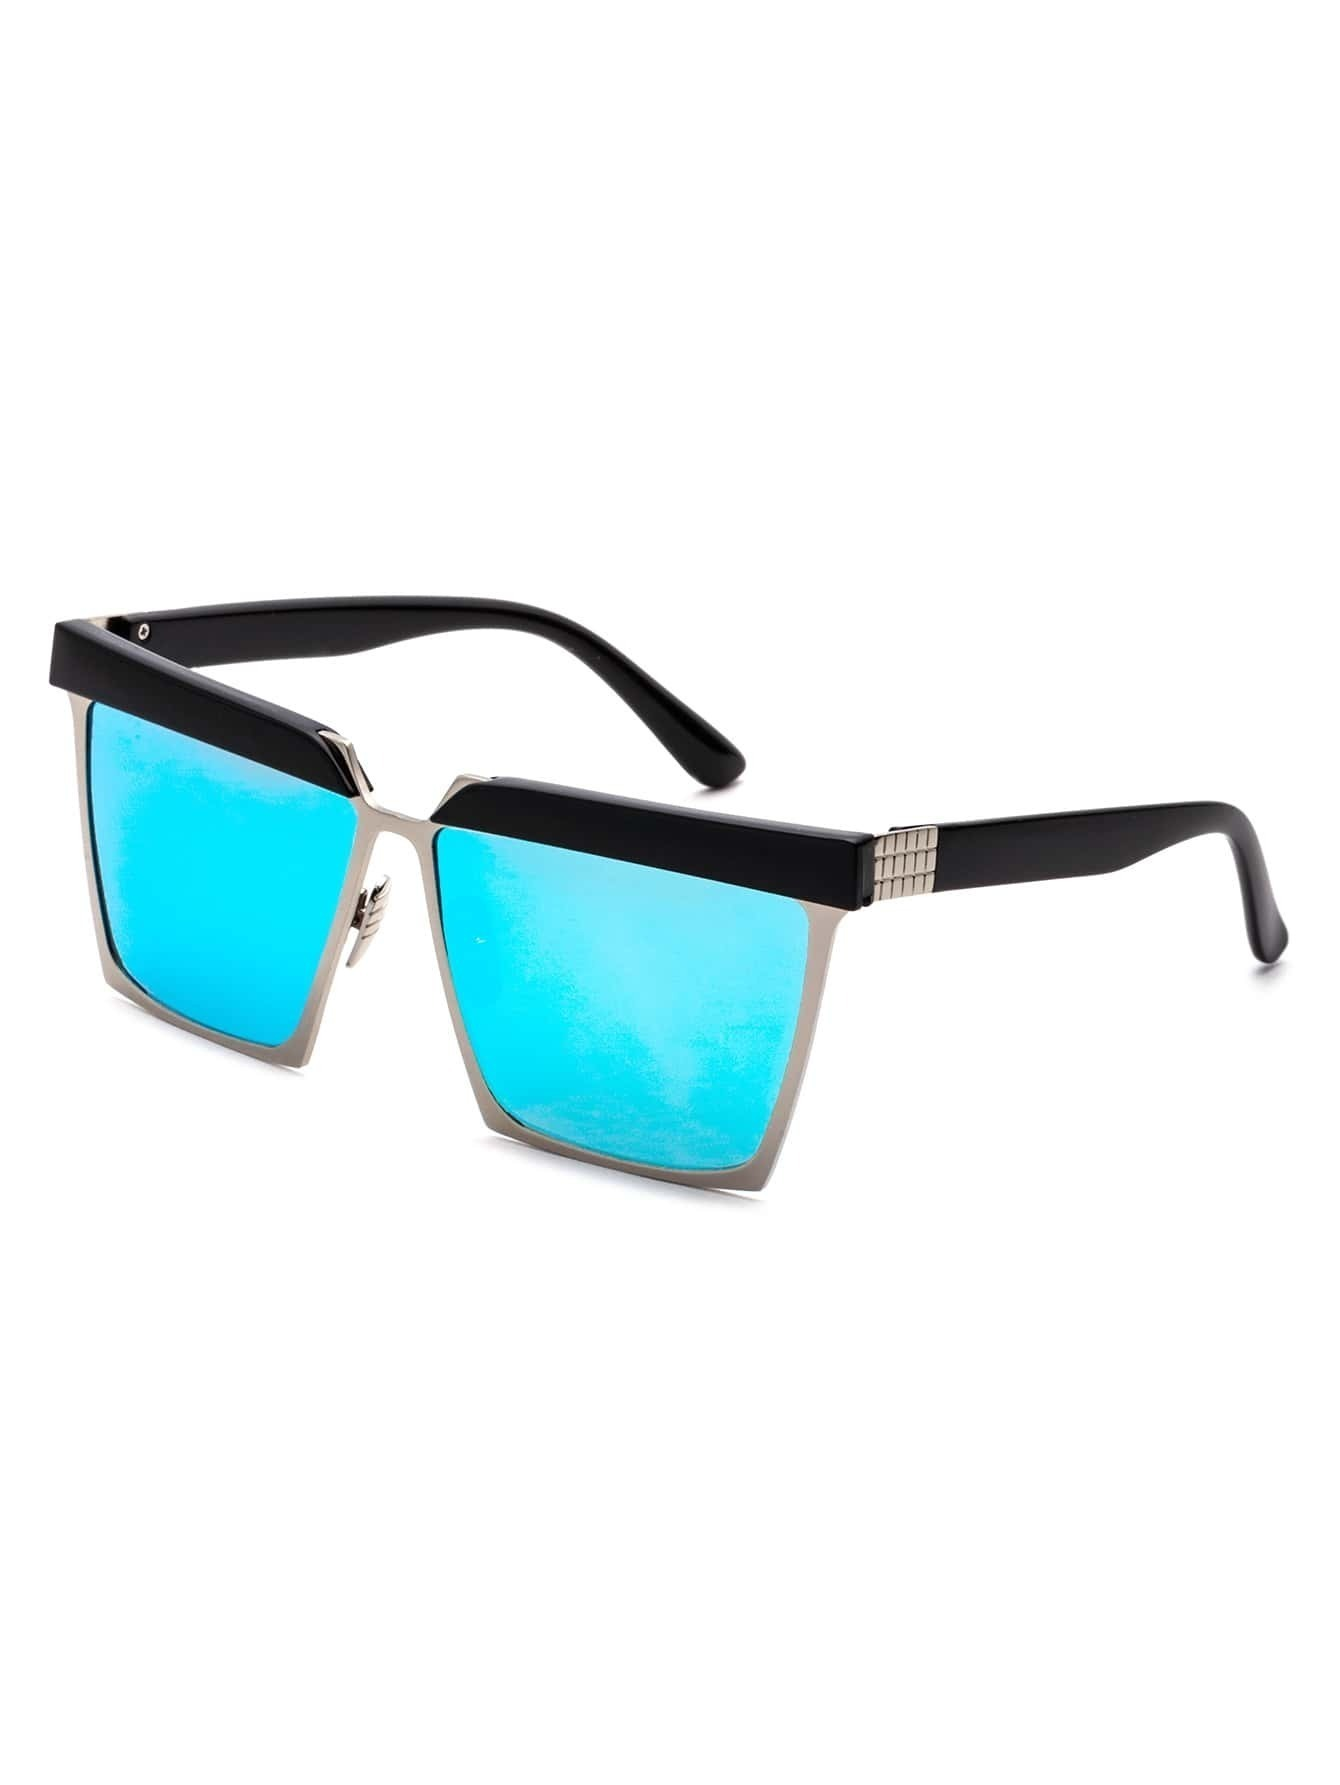 Black Open Frame Blue Lens Sunglasses